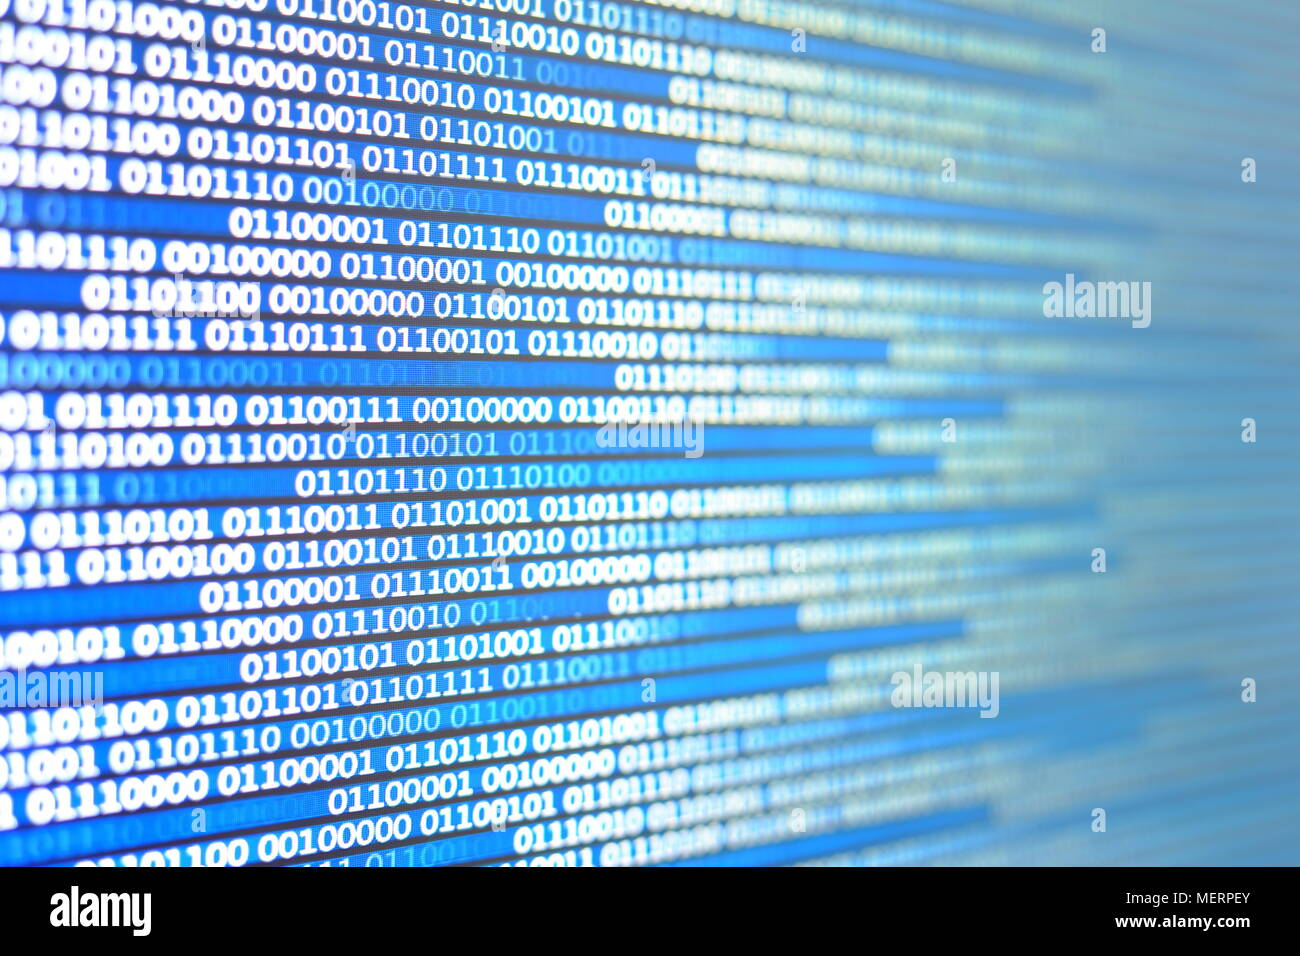 Abstract Technology data stream concepts. moving white blue binary code on black display screen. - Stock Image